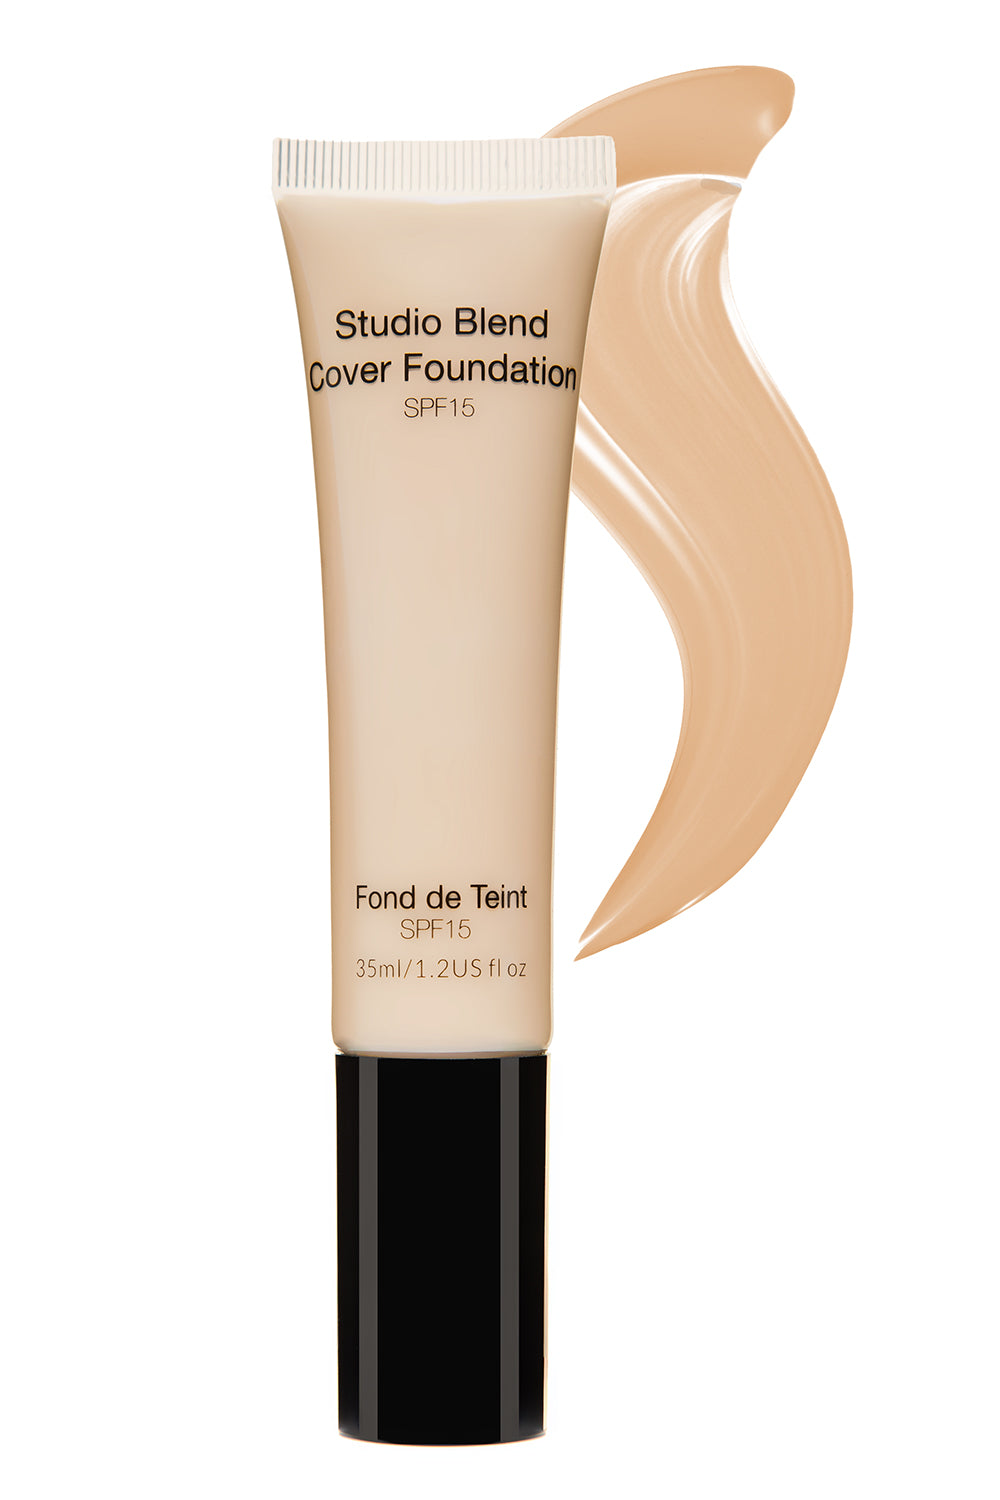 Studio Blend Cover Foundation FH105